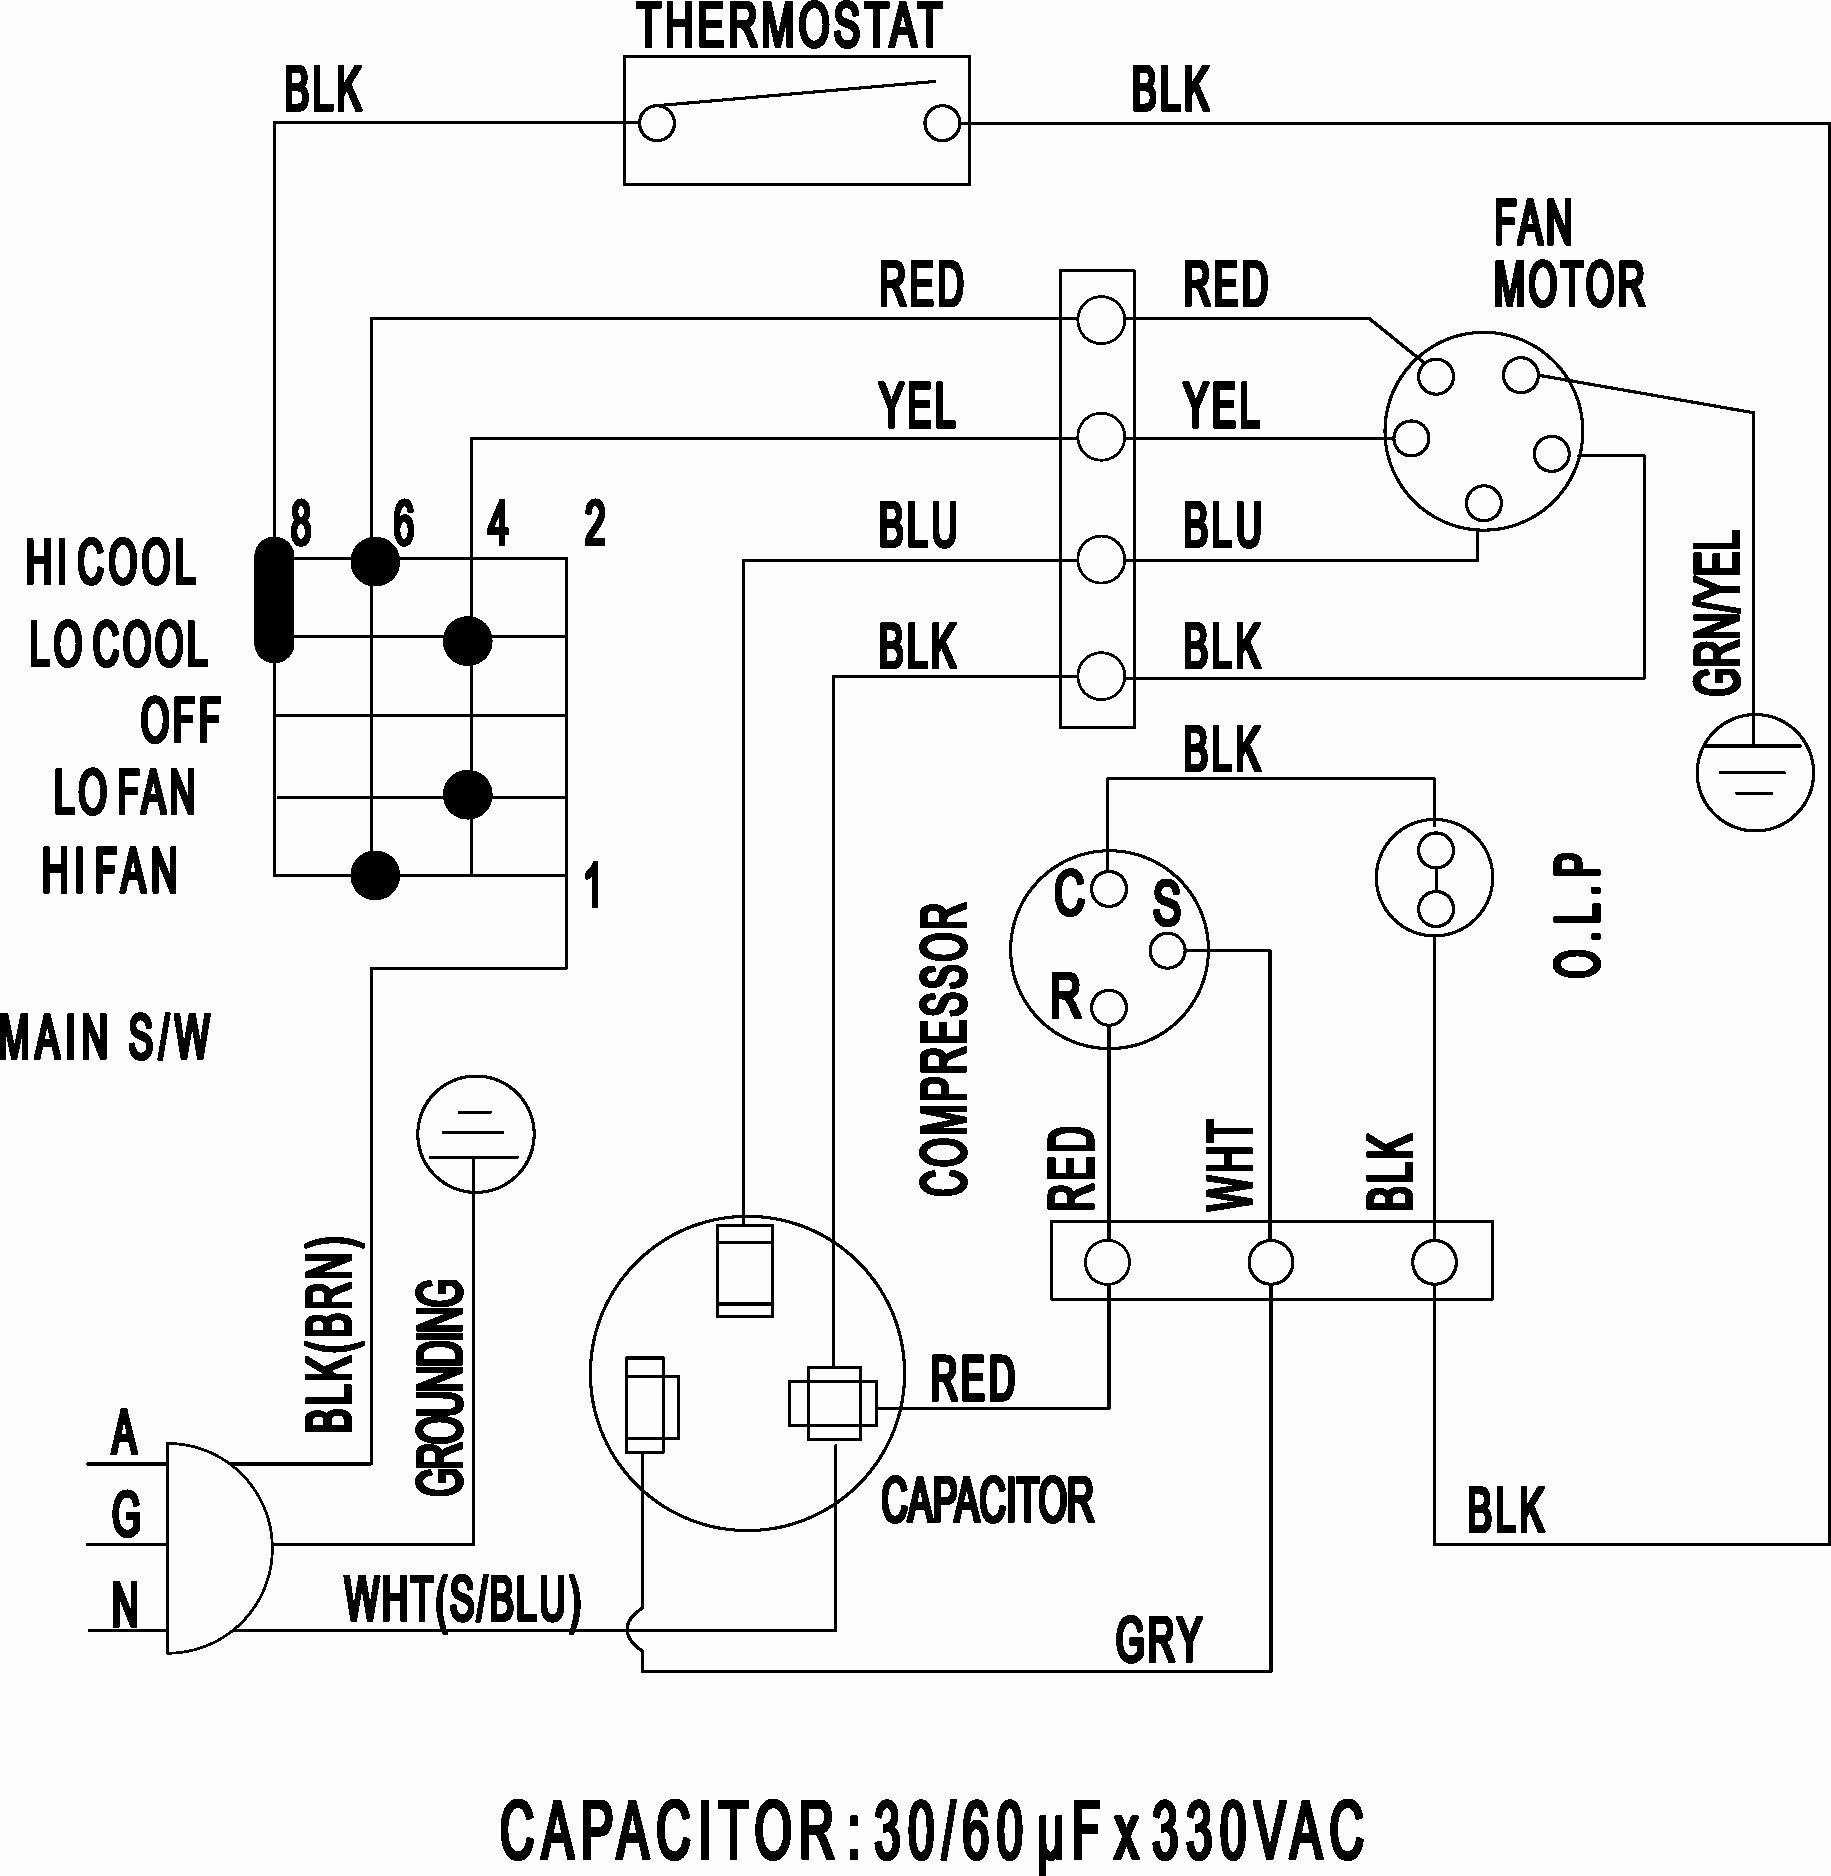 Ac Box Wiring Diagram | Wiring Diagram Ac Box Wiring Diagram on